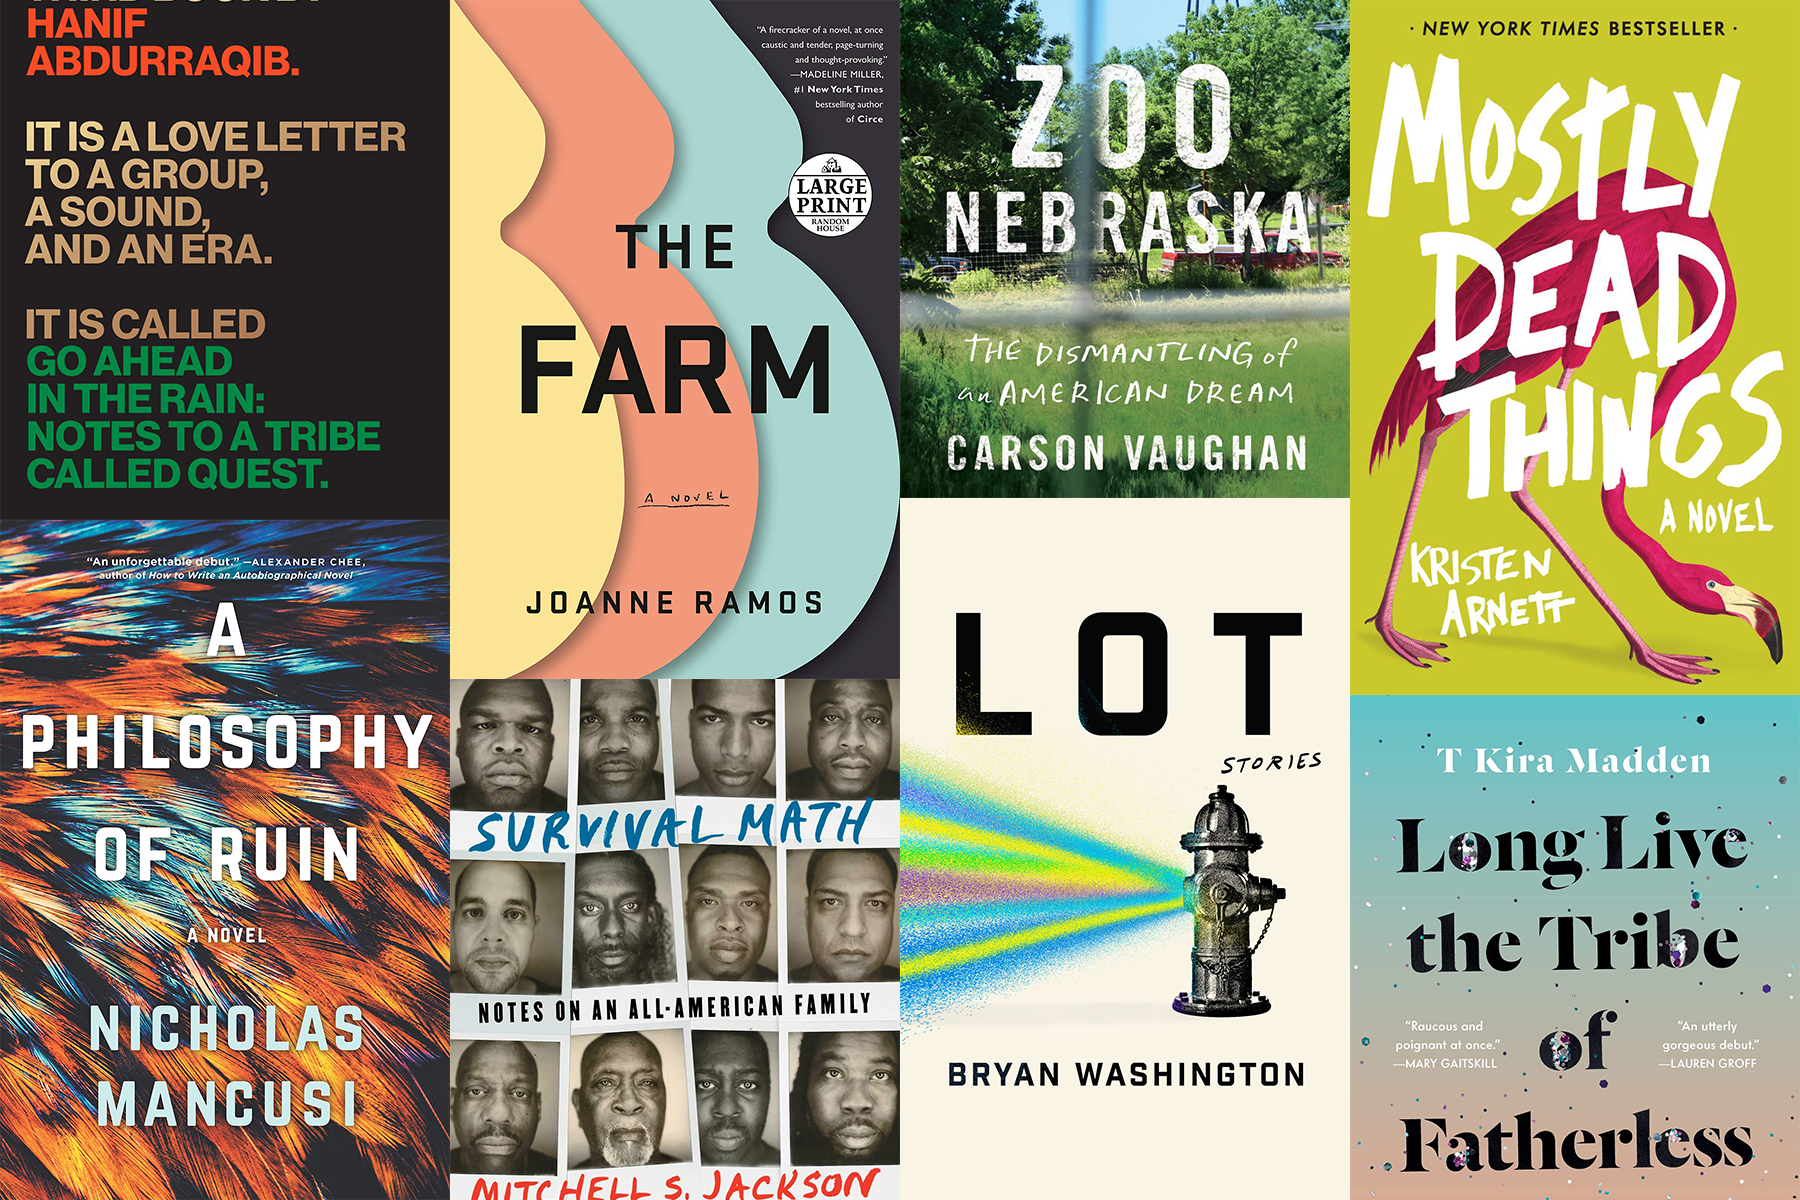 The 25 Best Books of the First Half of 2019 - InsideHook